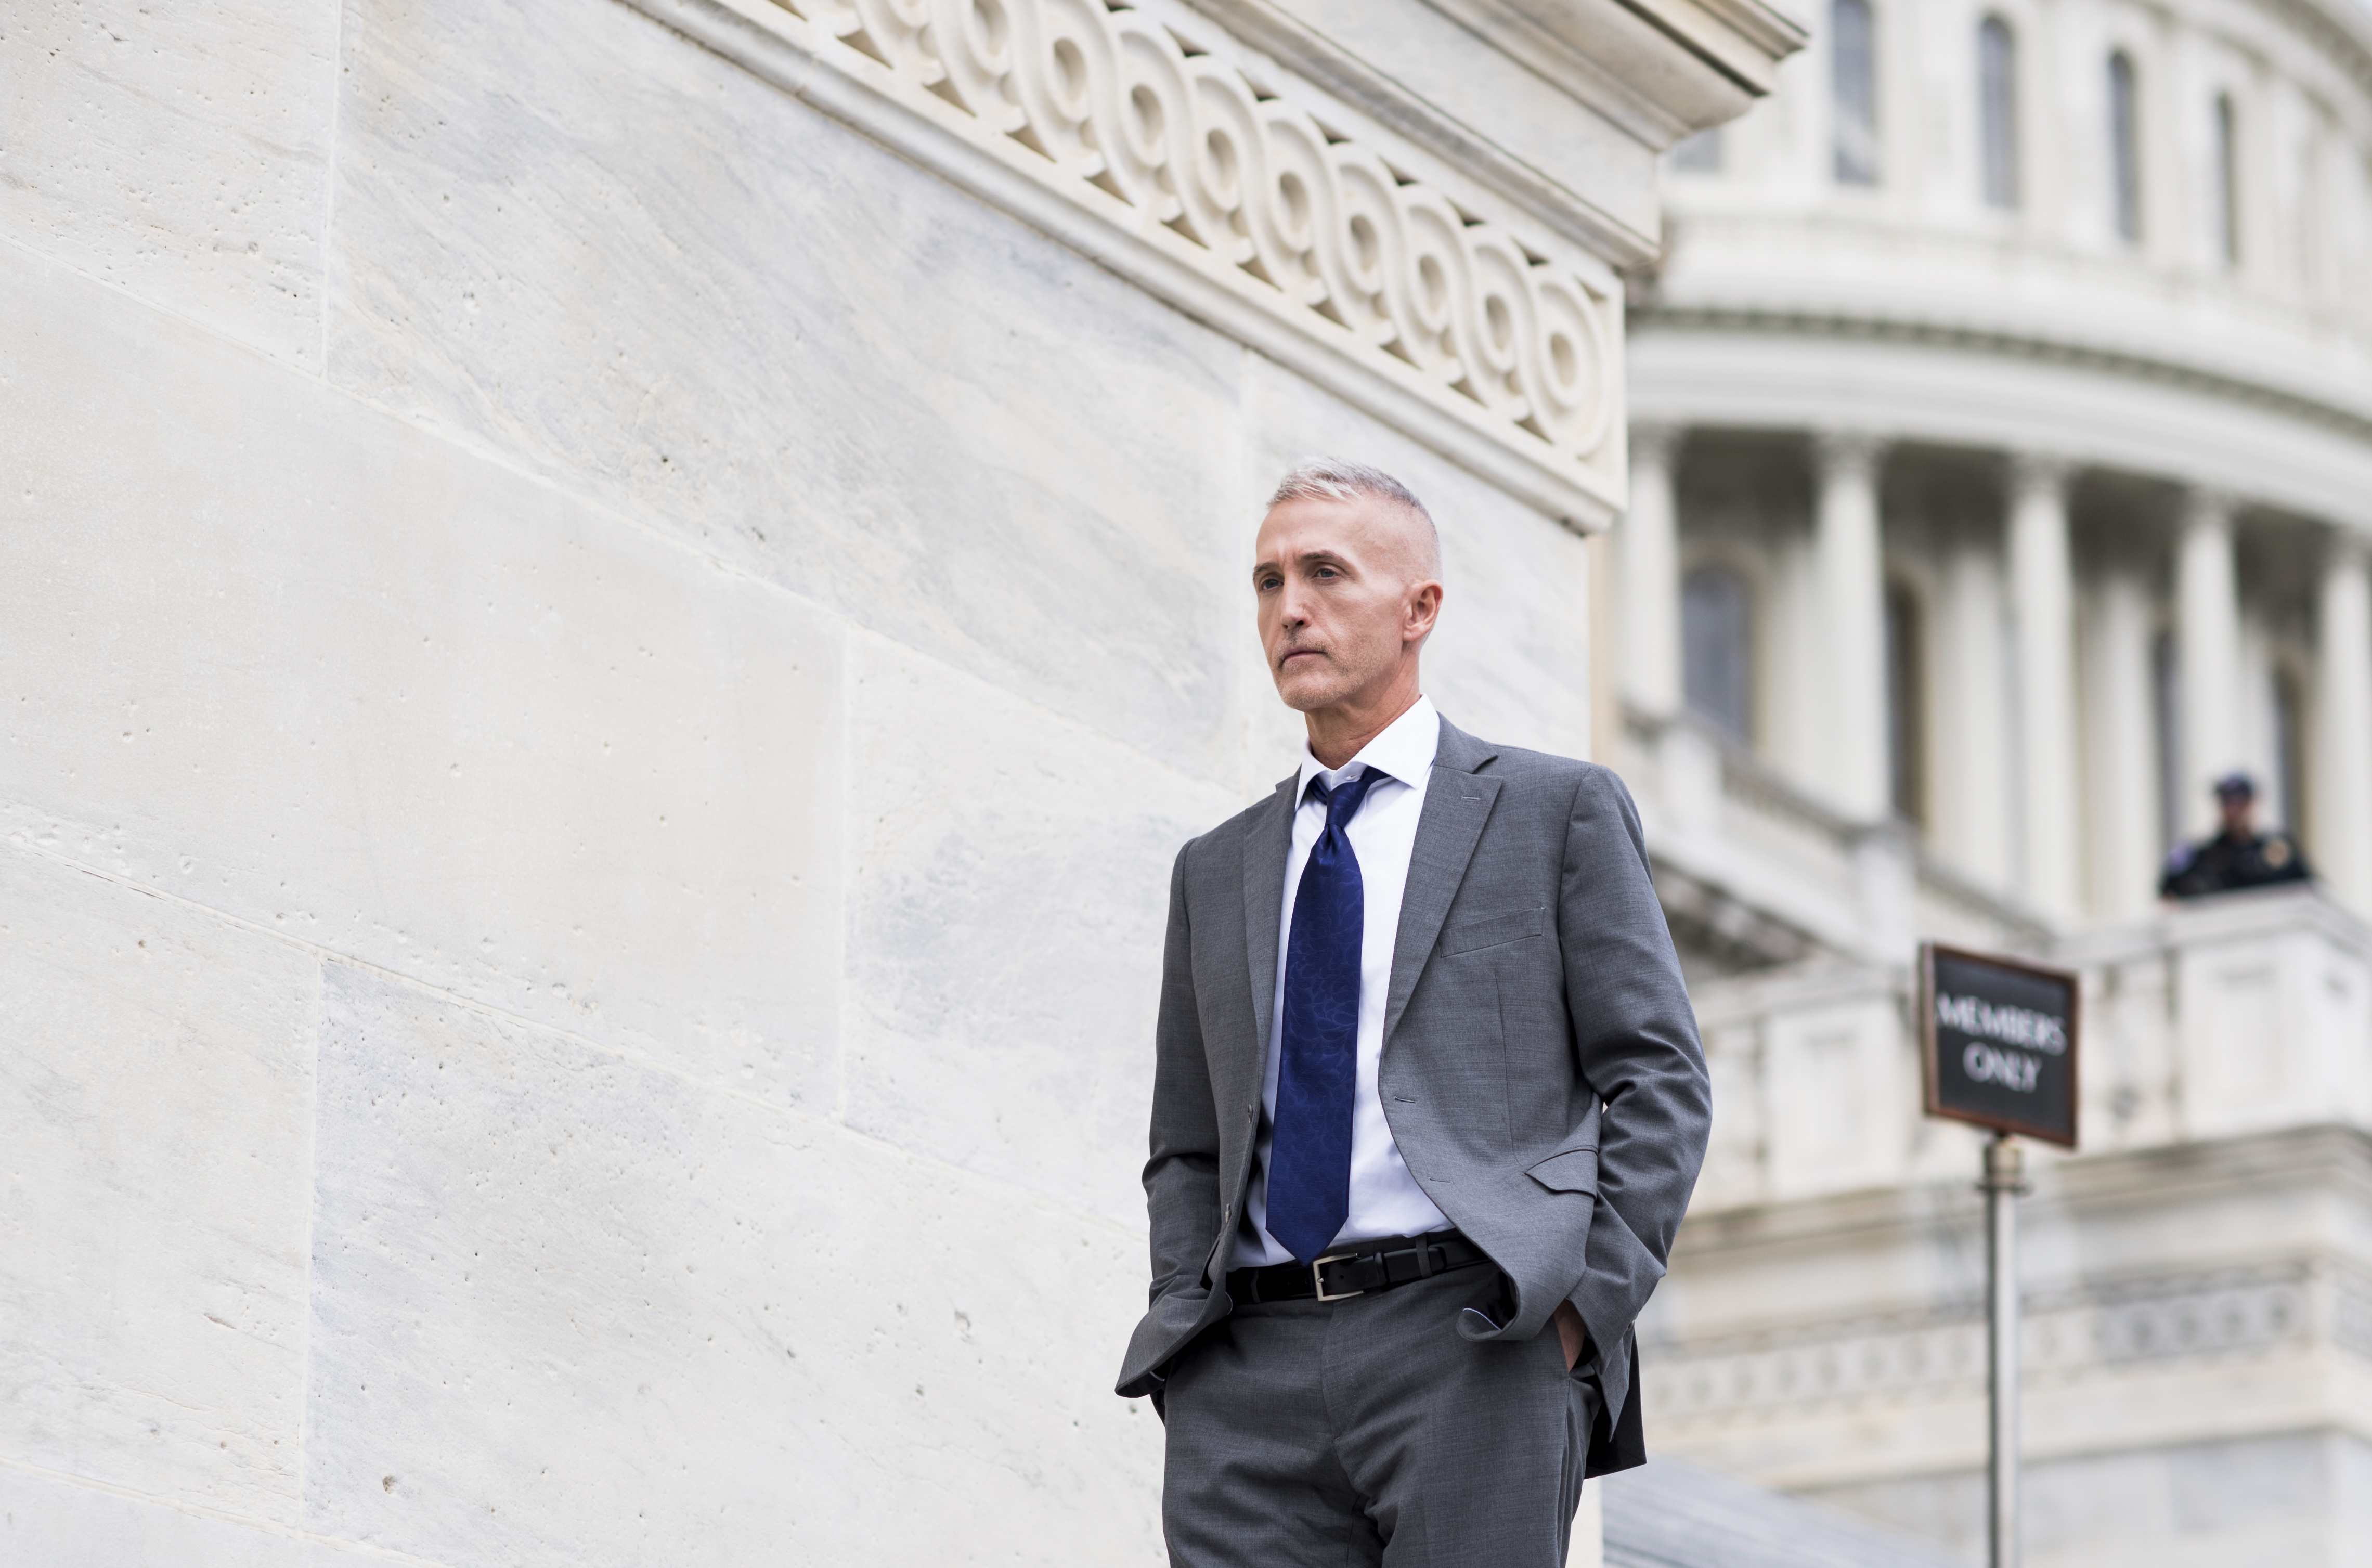 Rep. Trey Gowdy, R-S.C., walks down the House steps at the Capitol on May 4, 2017.